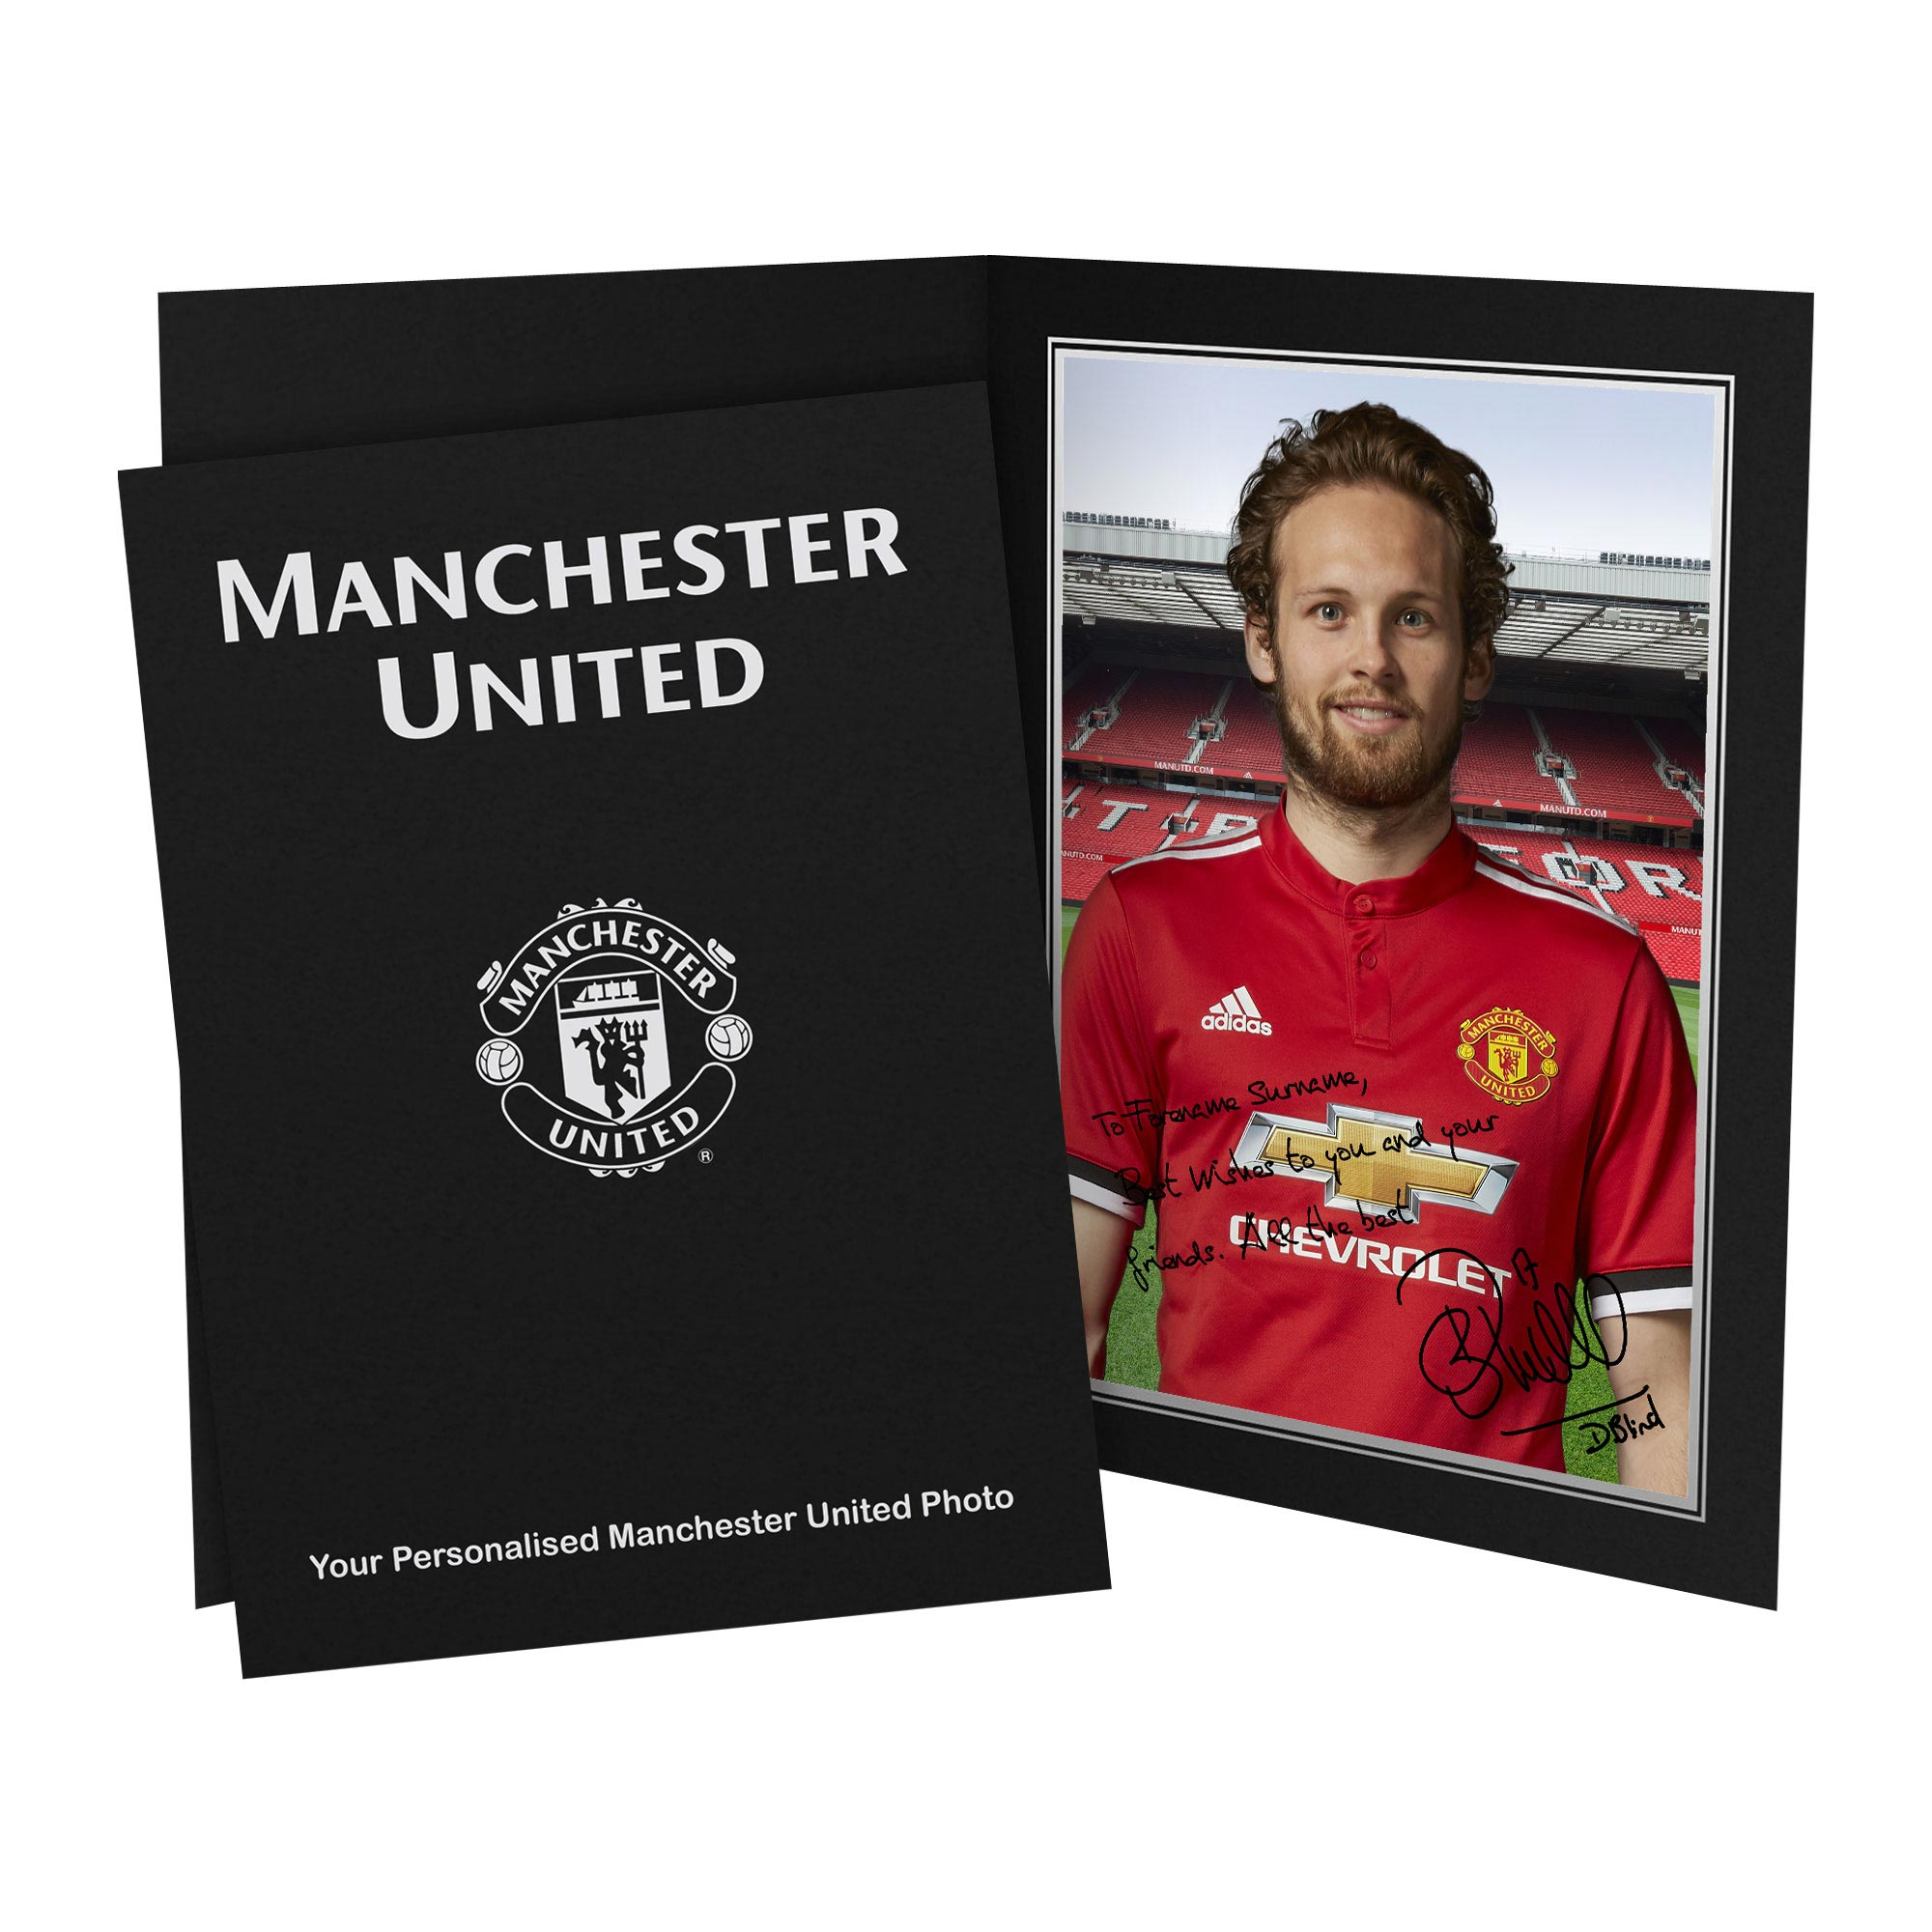 Manchester United Personalised Signature Photo in Presentation Folder - Blind